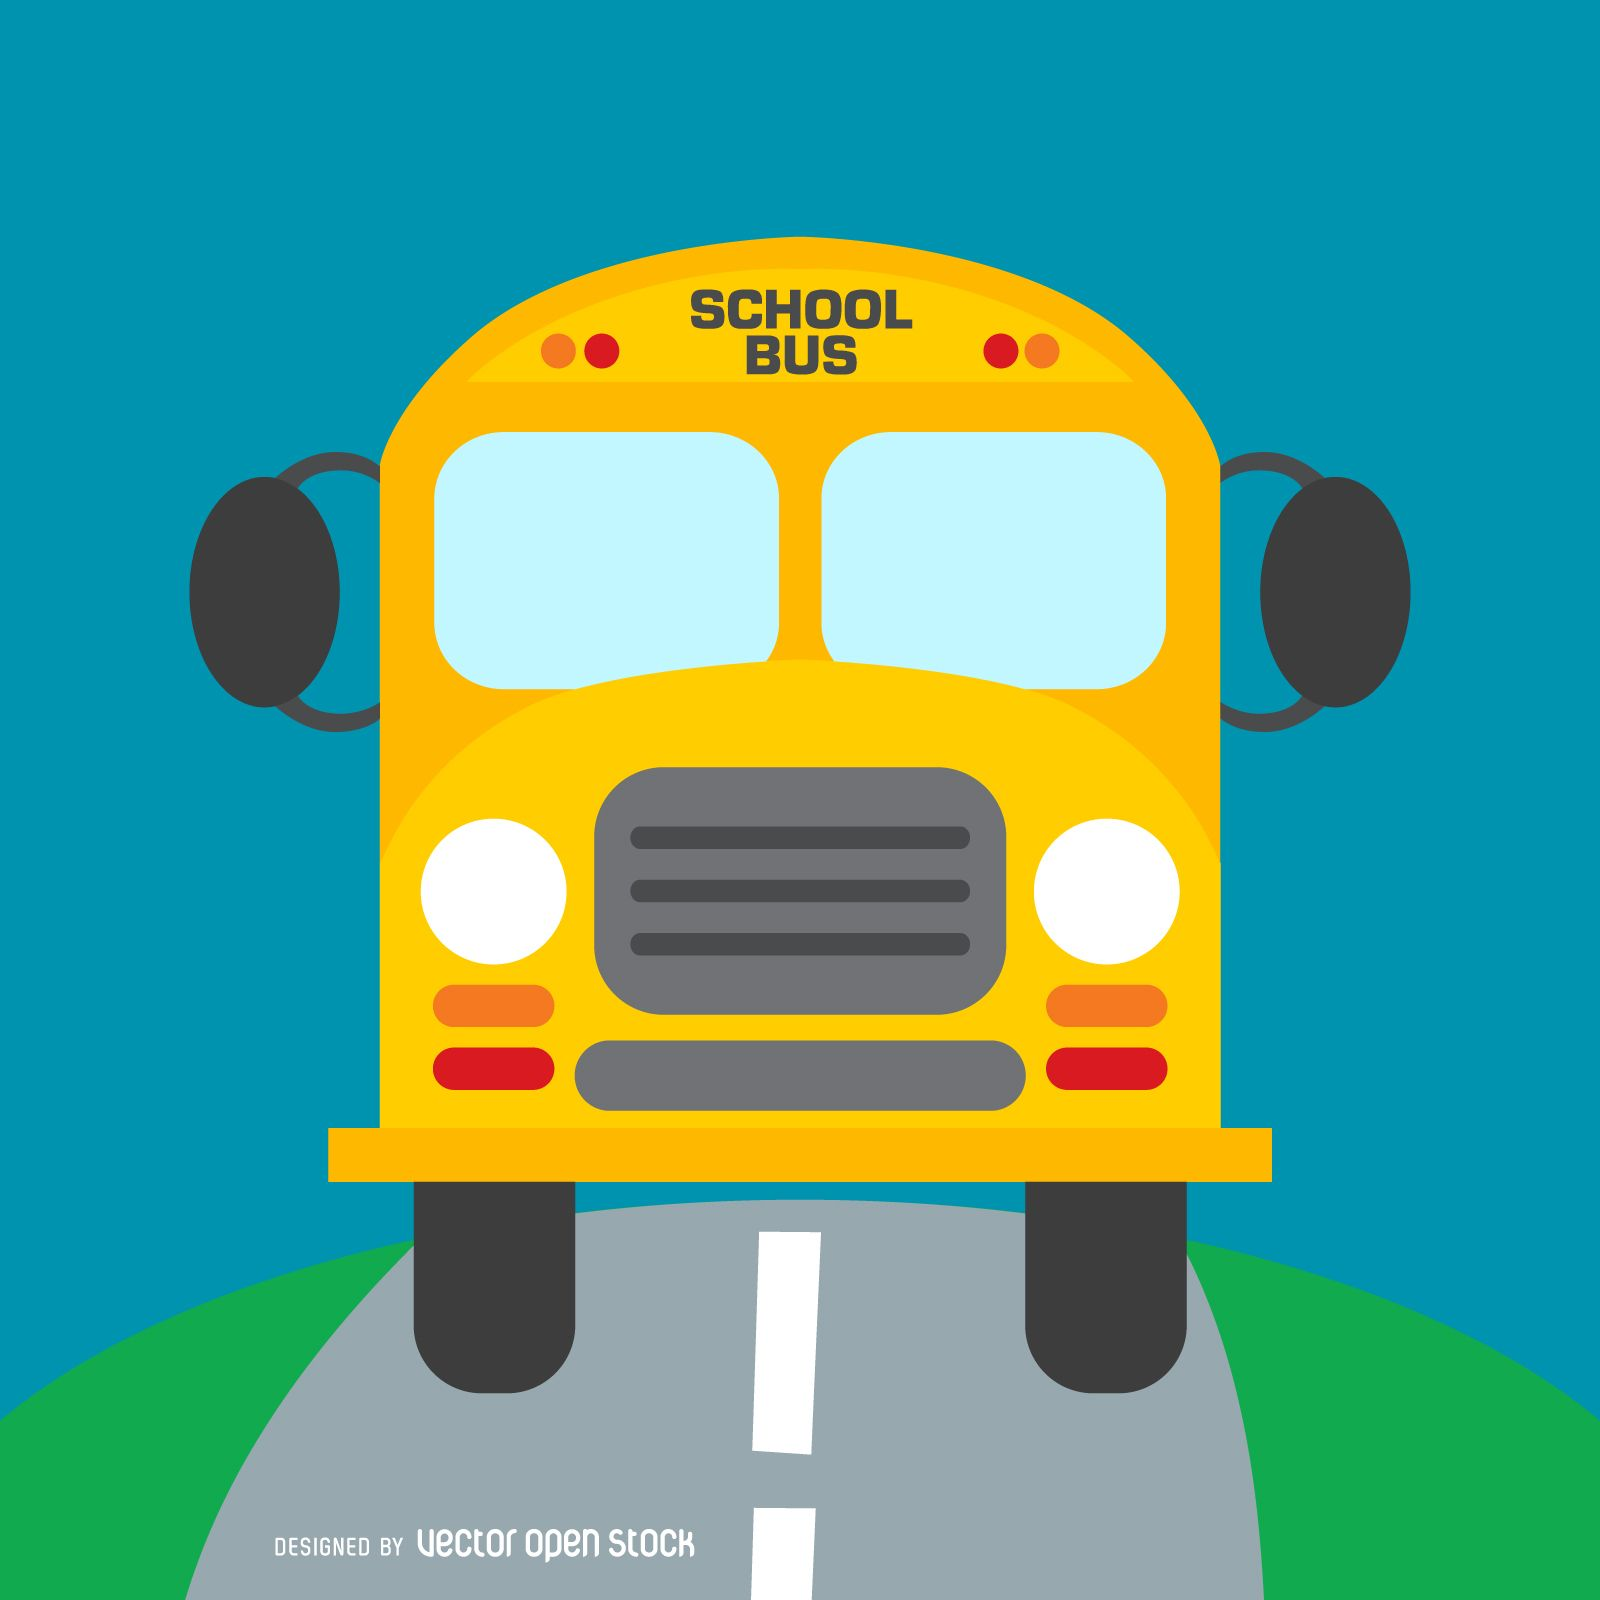 Illustrated Yellow School Bus On A Road Cartoon With A Sign That